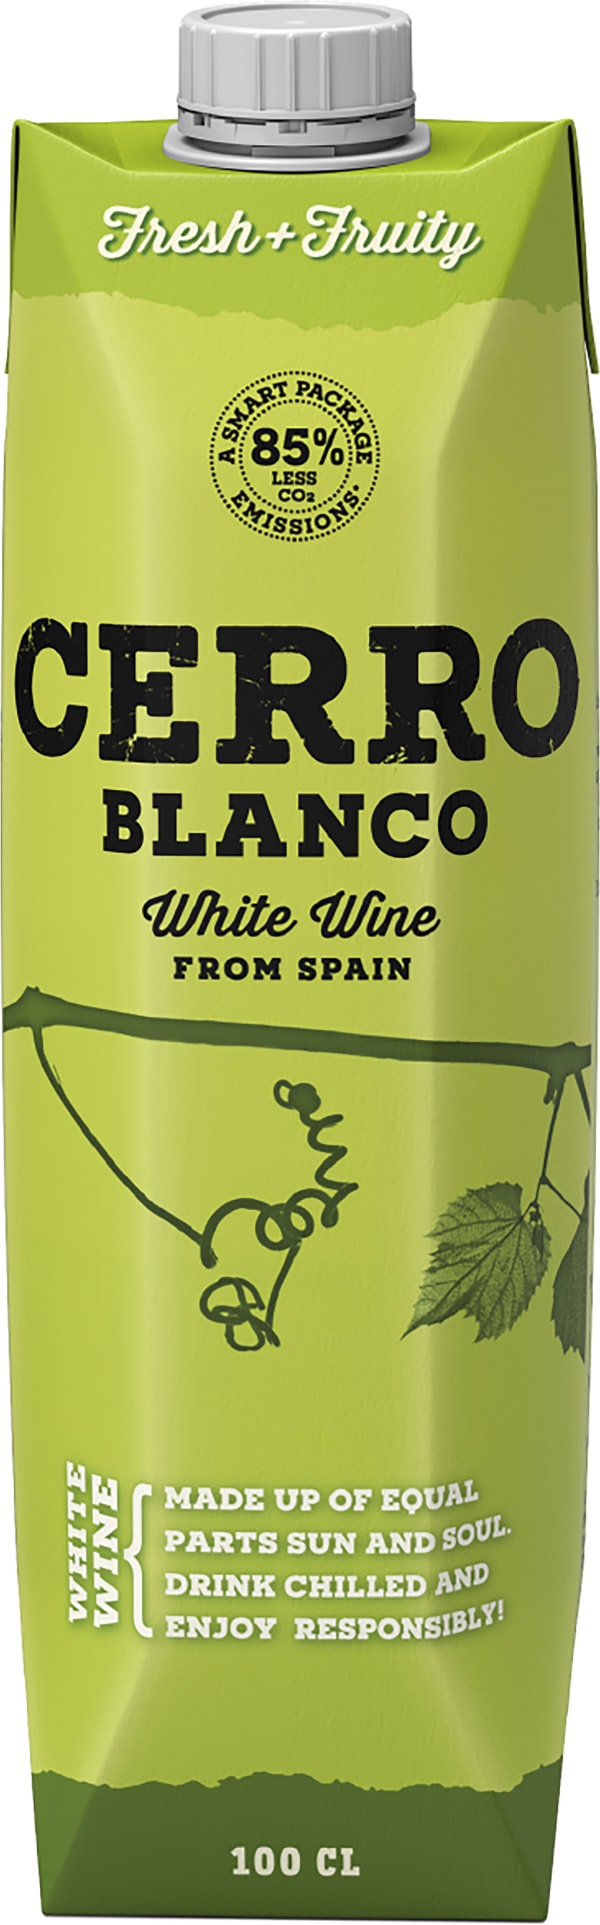 Cerro Blanco carton package